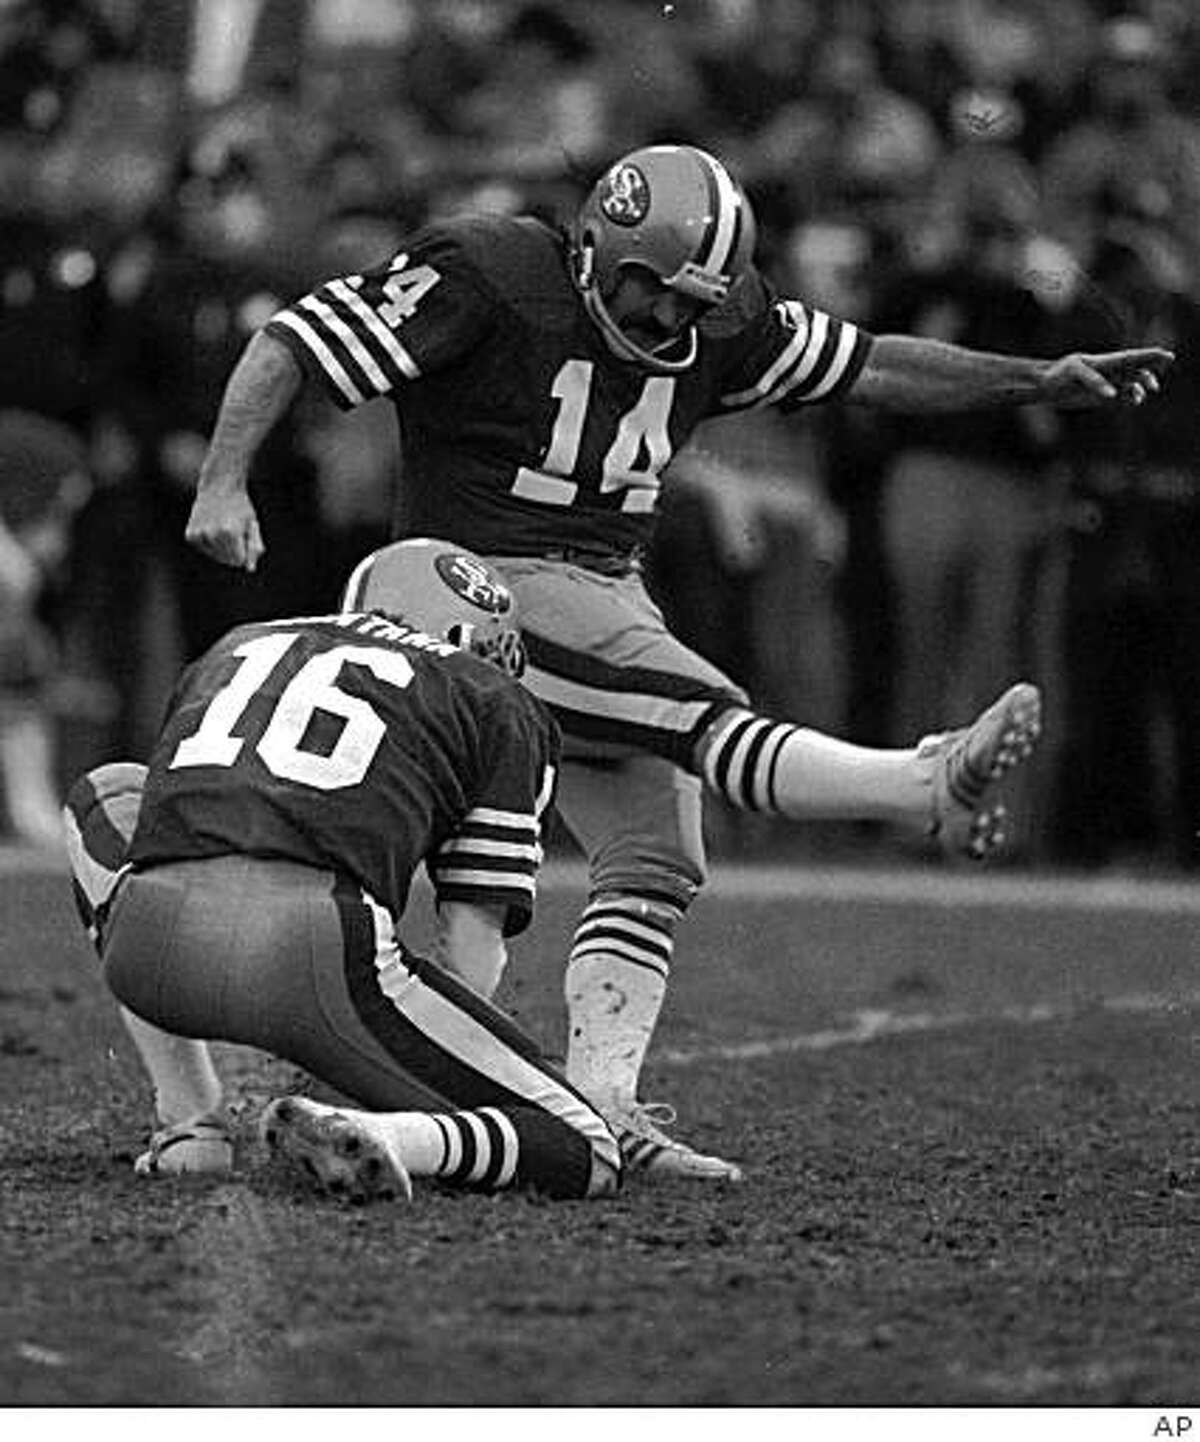 Ray Wersching was the place-kicker for the 49ers for 10 seasons (1977-87). In the last 10 years, the team has gone through nine others. Owen Pochman, the lastest, makes his debut today vs. the Browns.